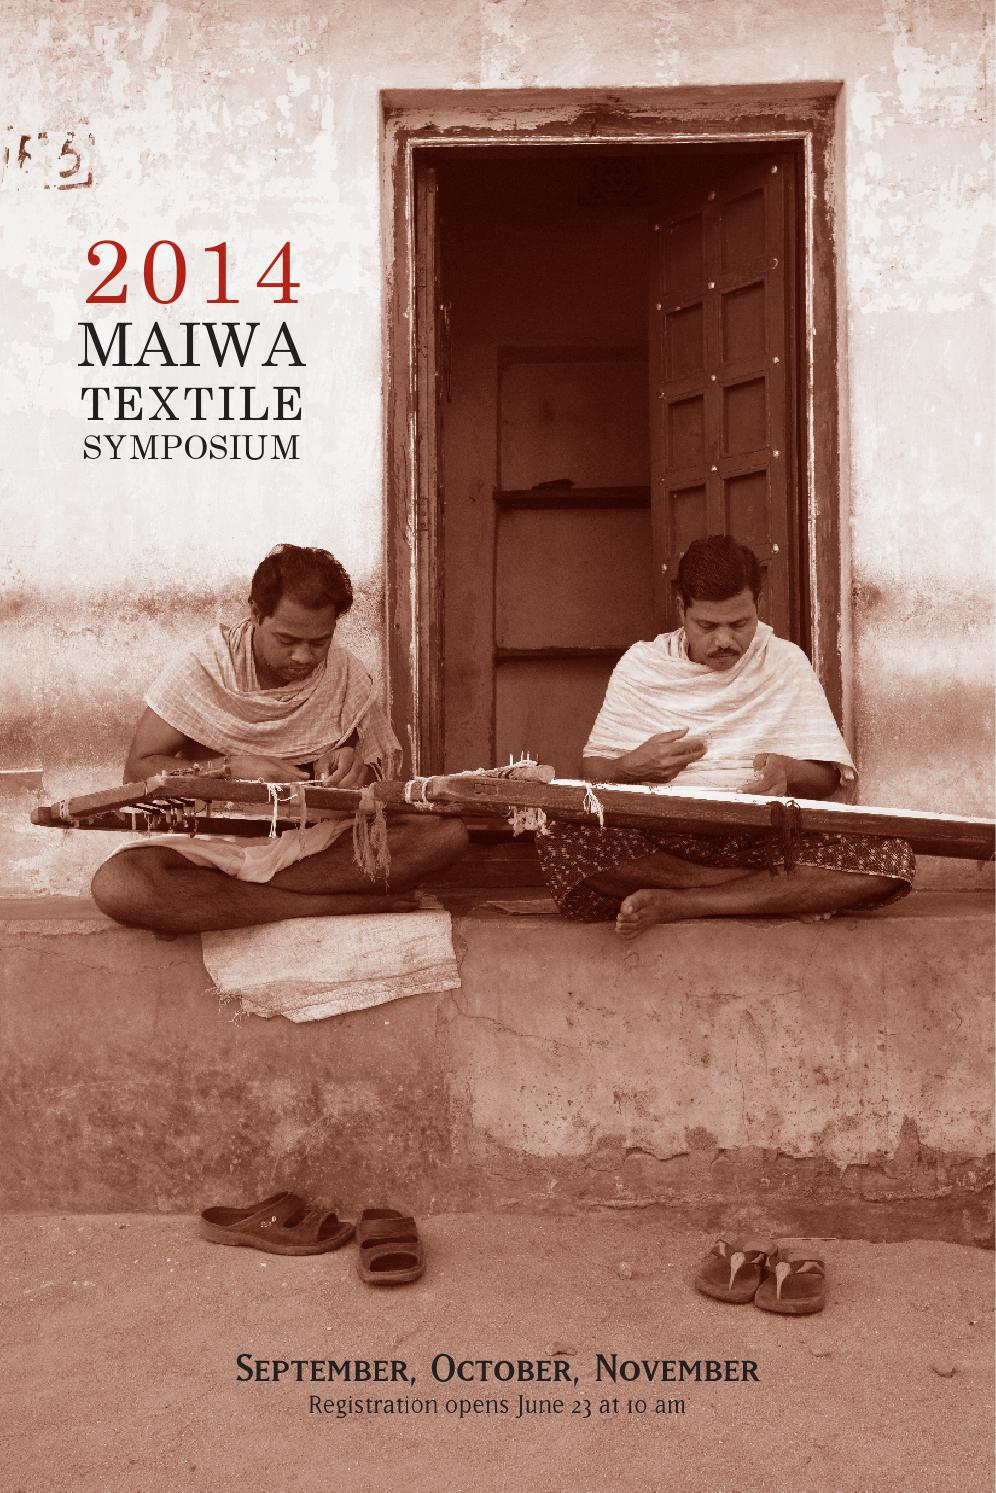 Maiwa 2014 Textile Symposium by Maiwa - issuu